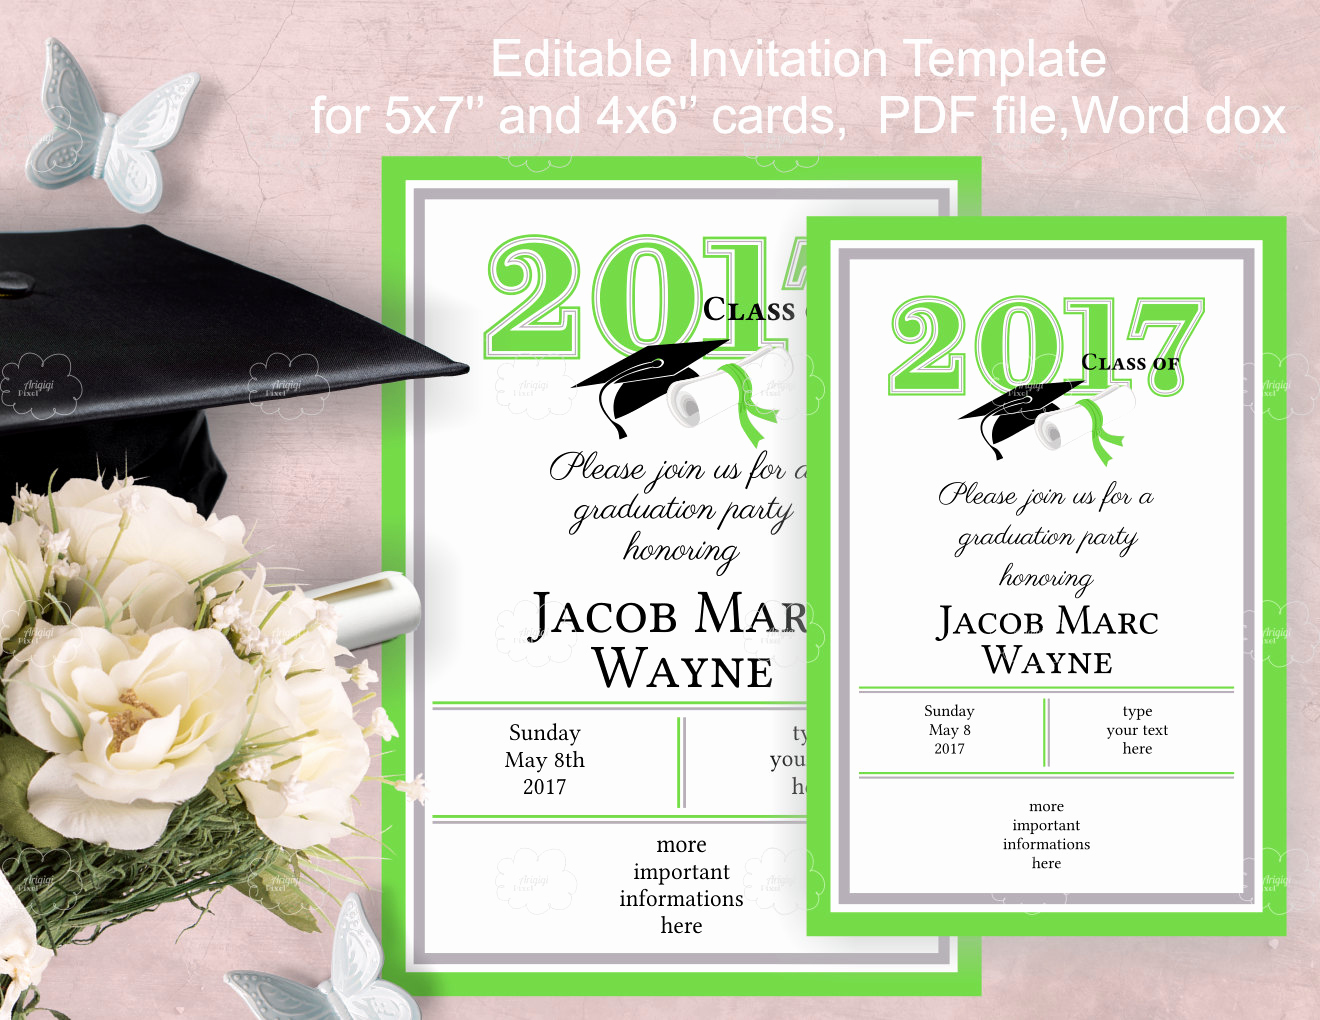 Graduation Party Invitation Templates New Graduation Party Invitation Template Edit Yourself